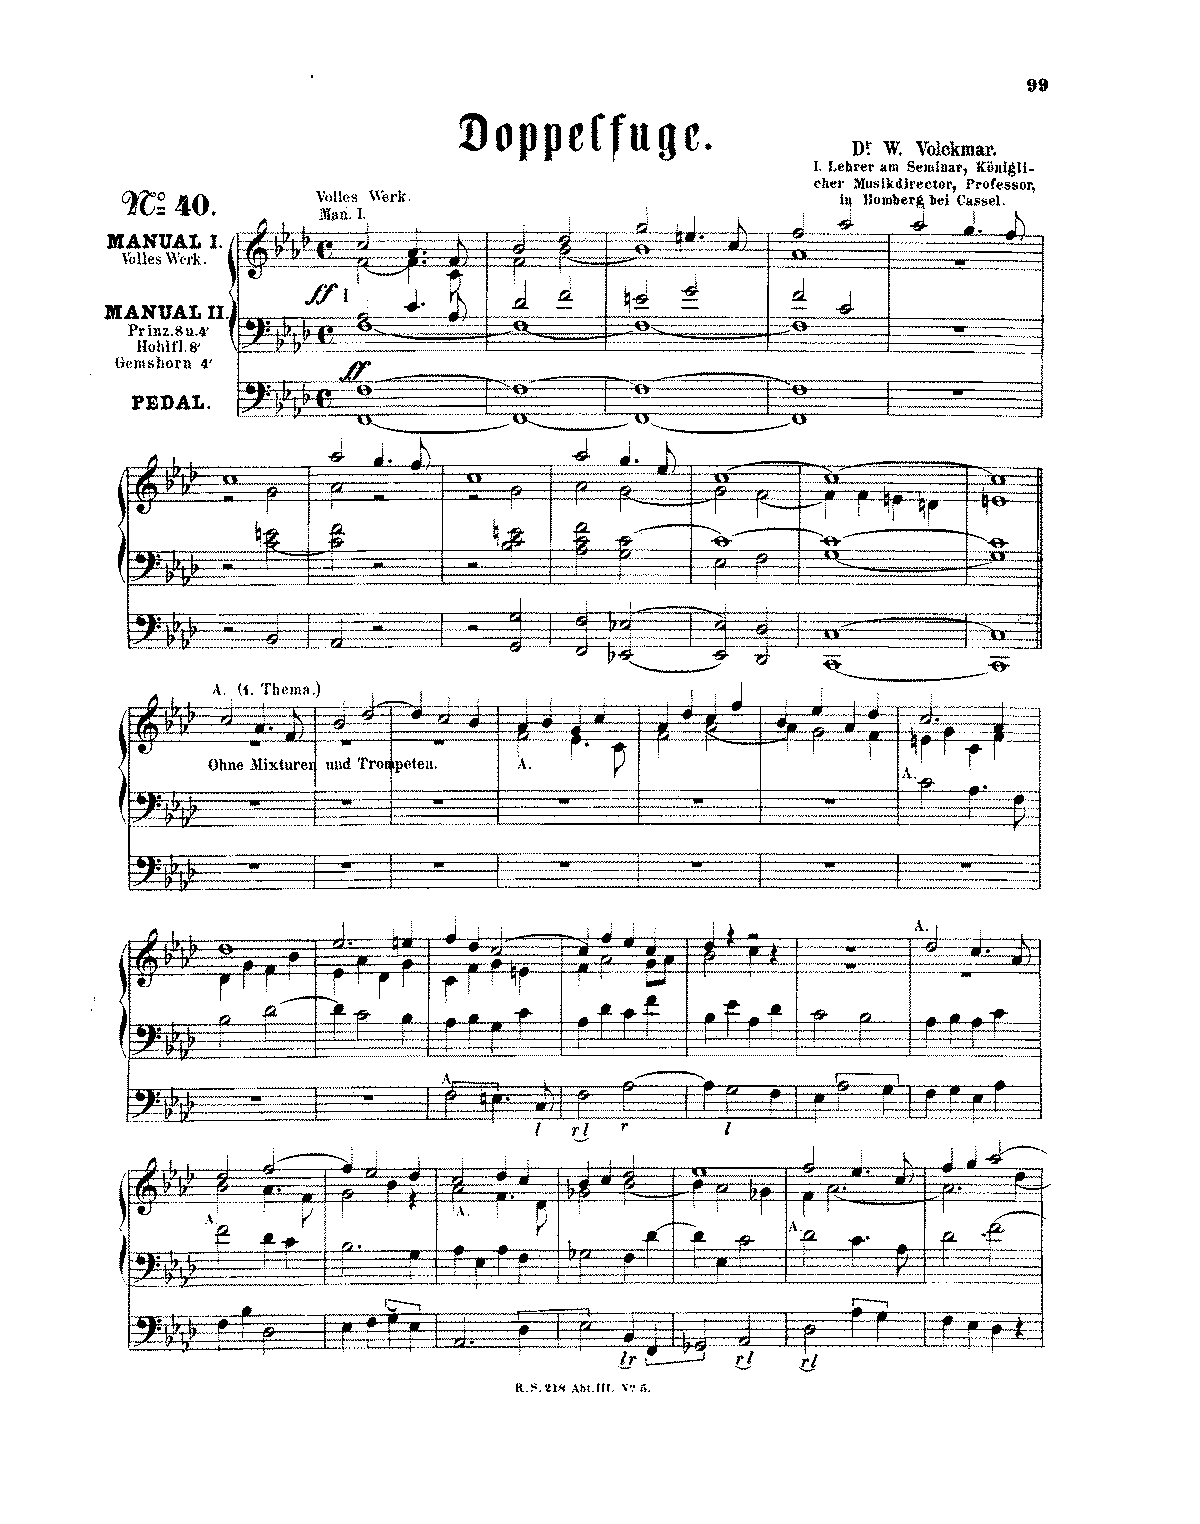 PMLP77080-Volckmar - Doppelfuge in F minor.pdf